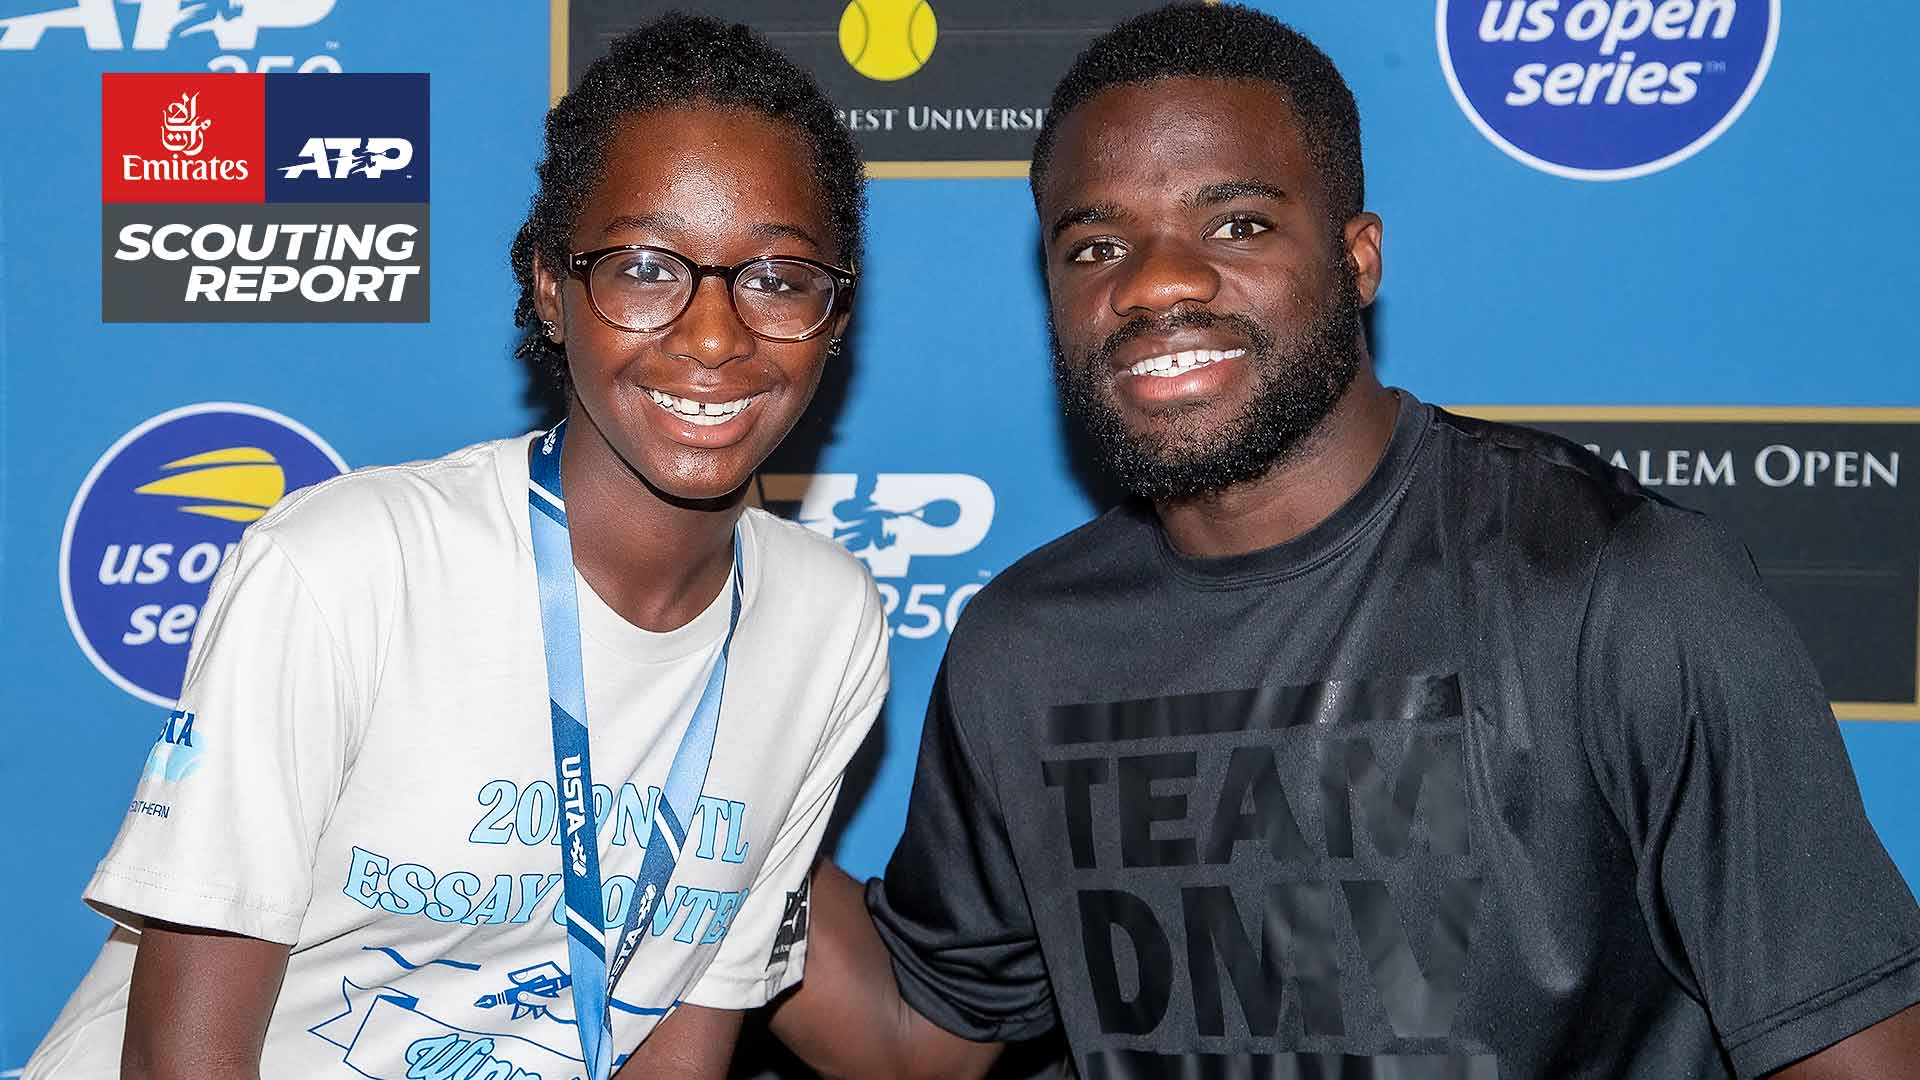 Frances Tiafoe returns to the tournament where he won his first ATP Tour match in 2015.